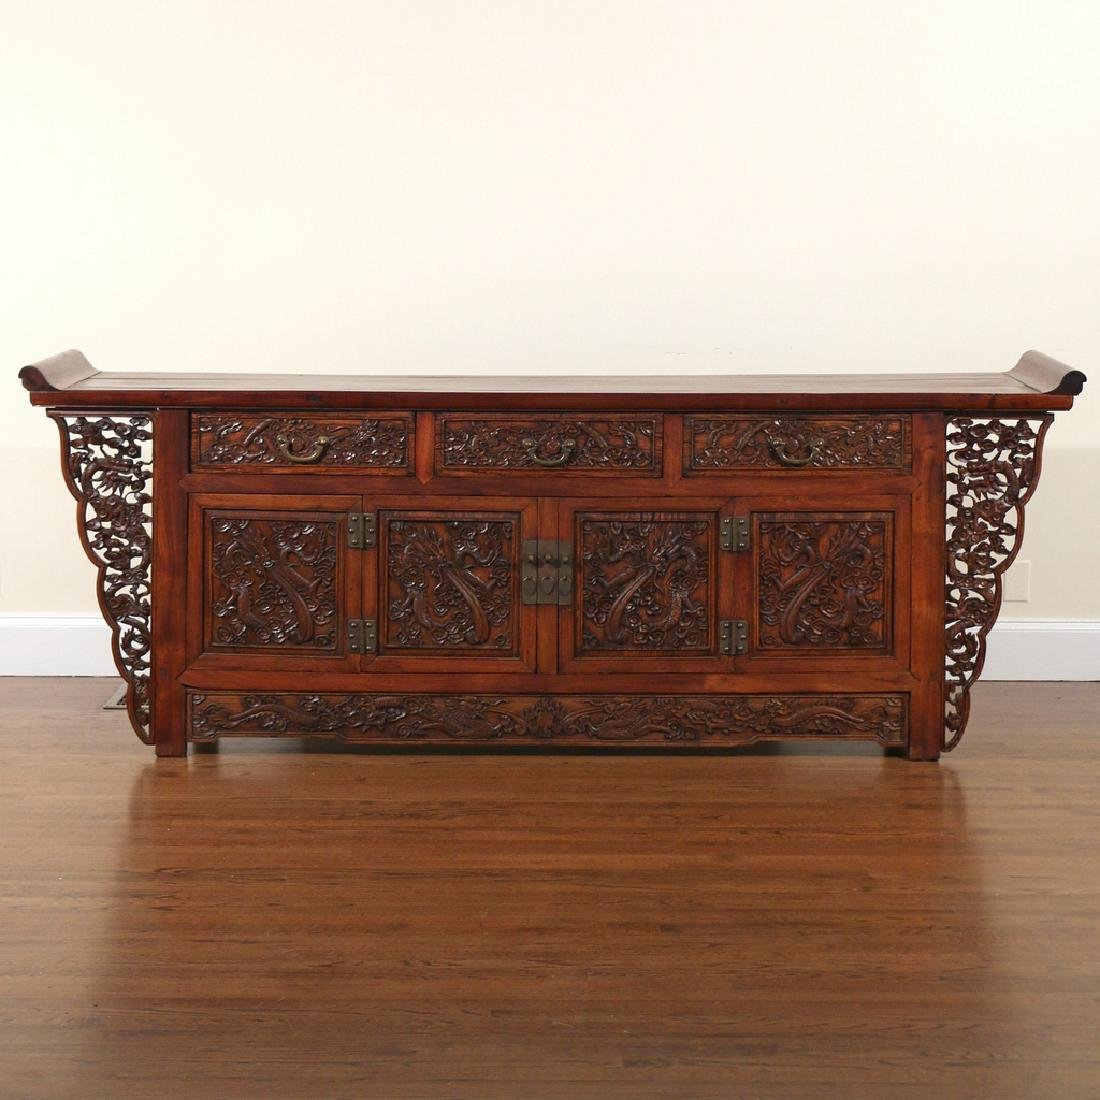 CHINESE HARDWOOD CARVED COFFER (LIANSANCHU)